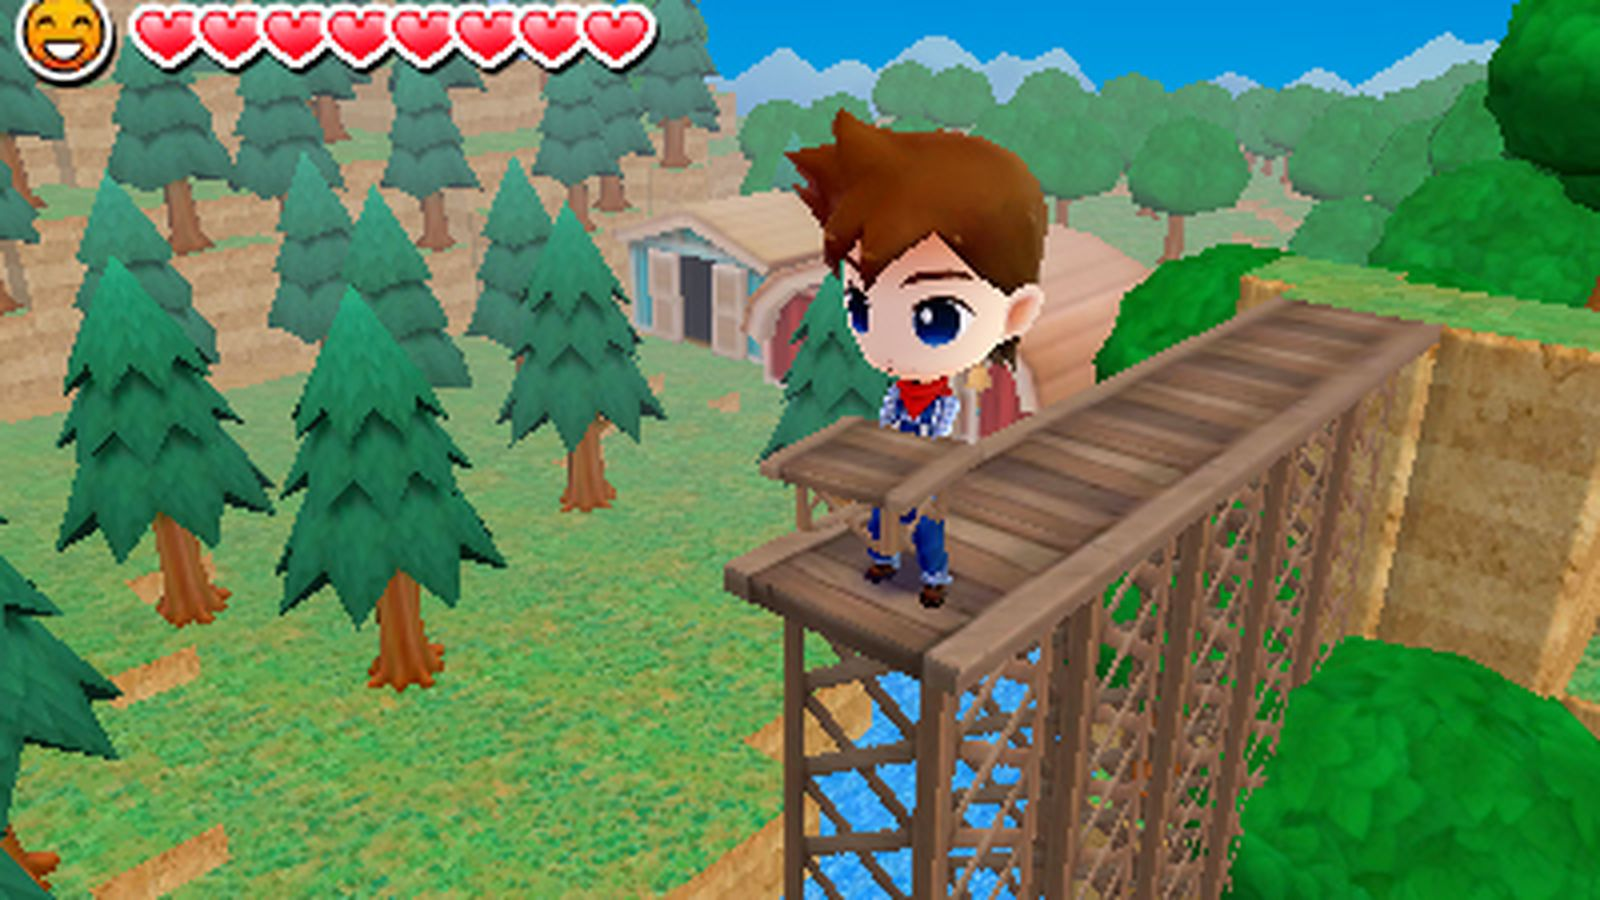 Harvest Moon is heading to Switch and PC for the first